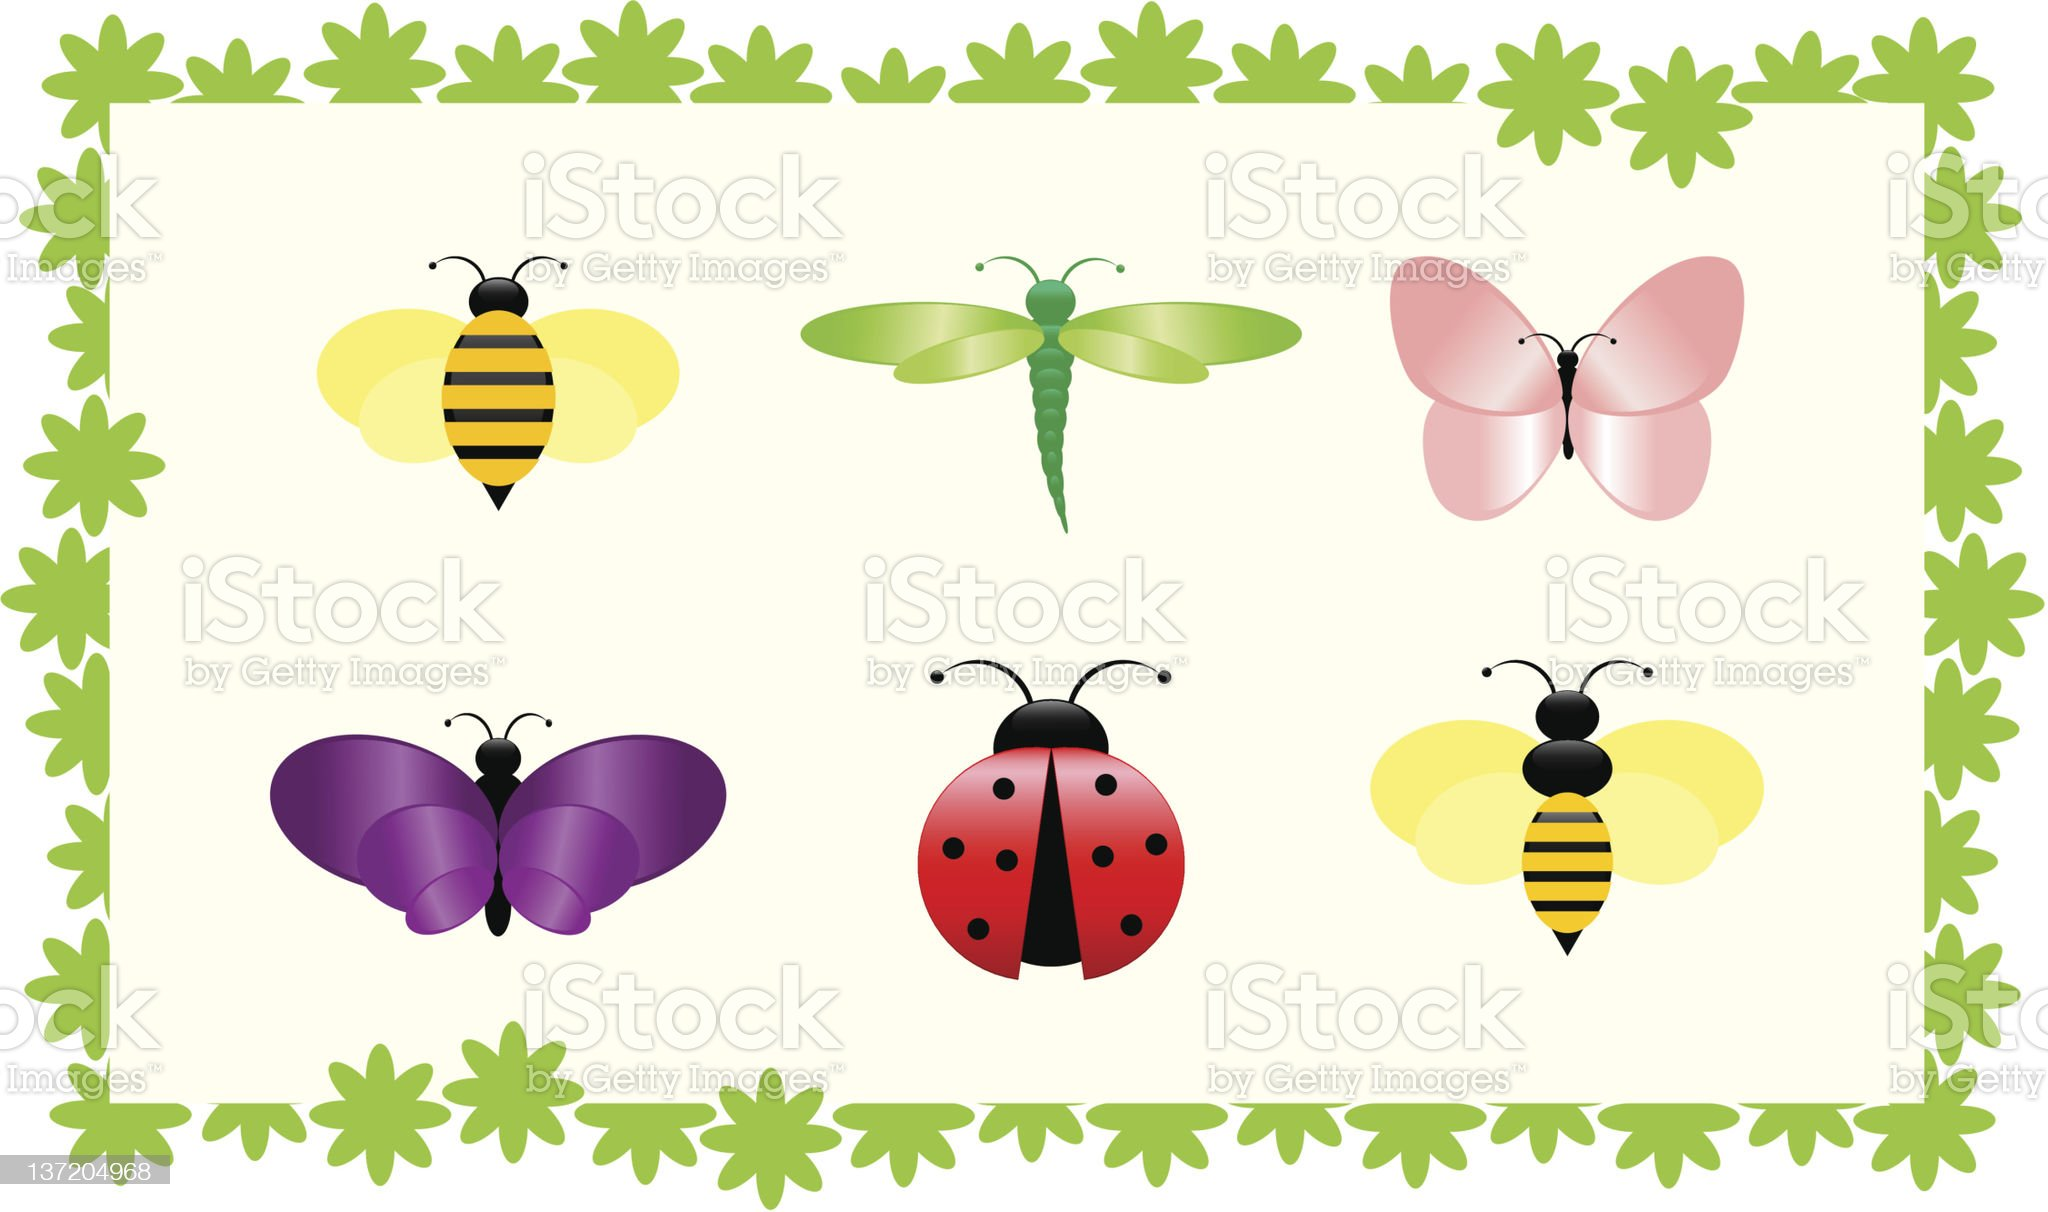 Stylized bugs royalty-free stock vector art